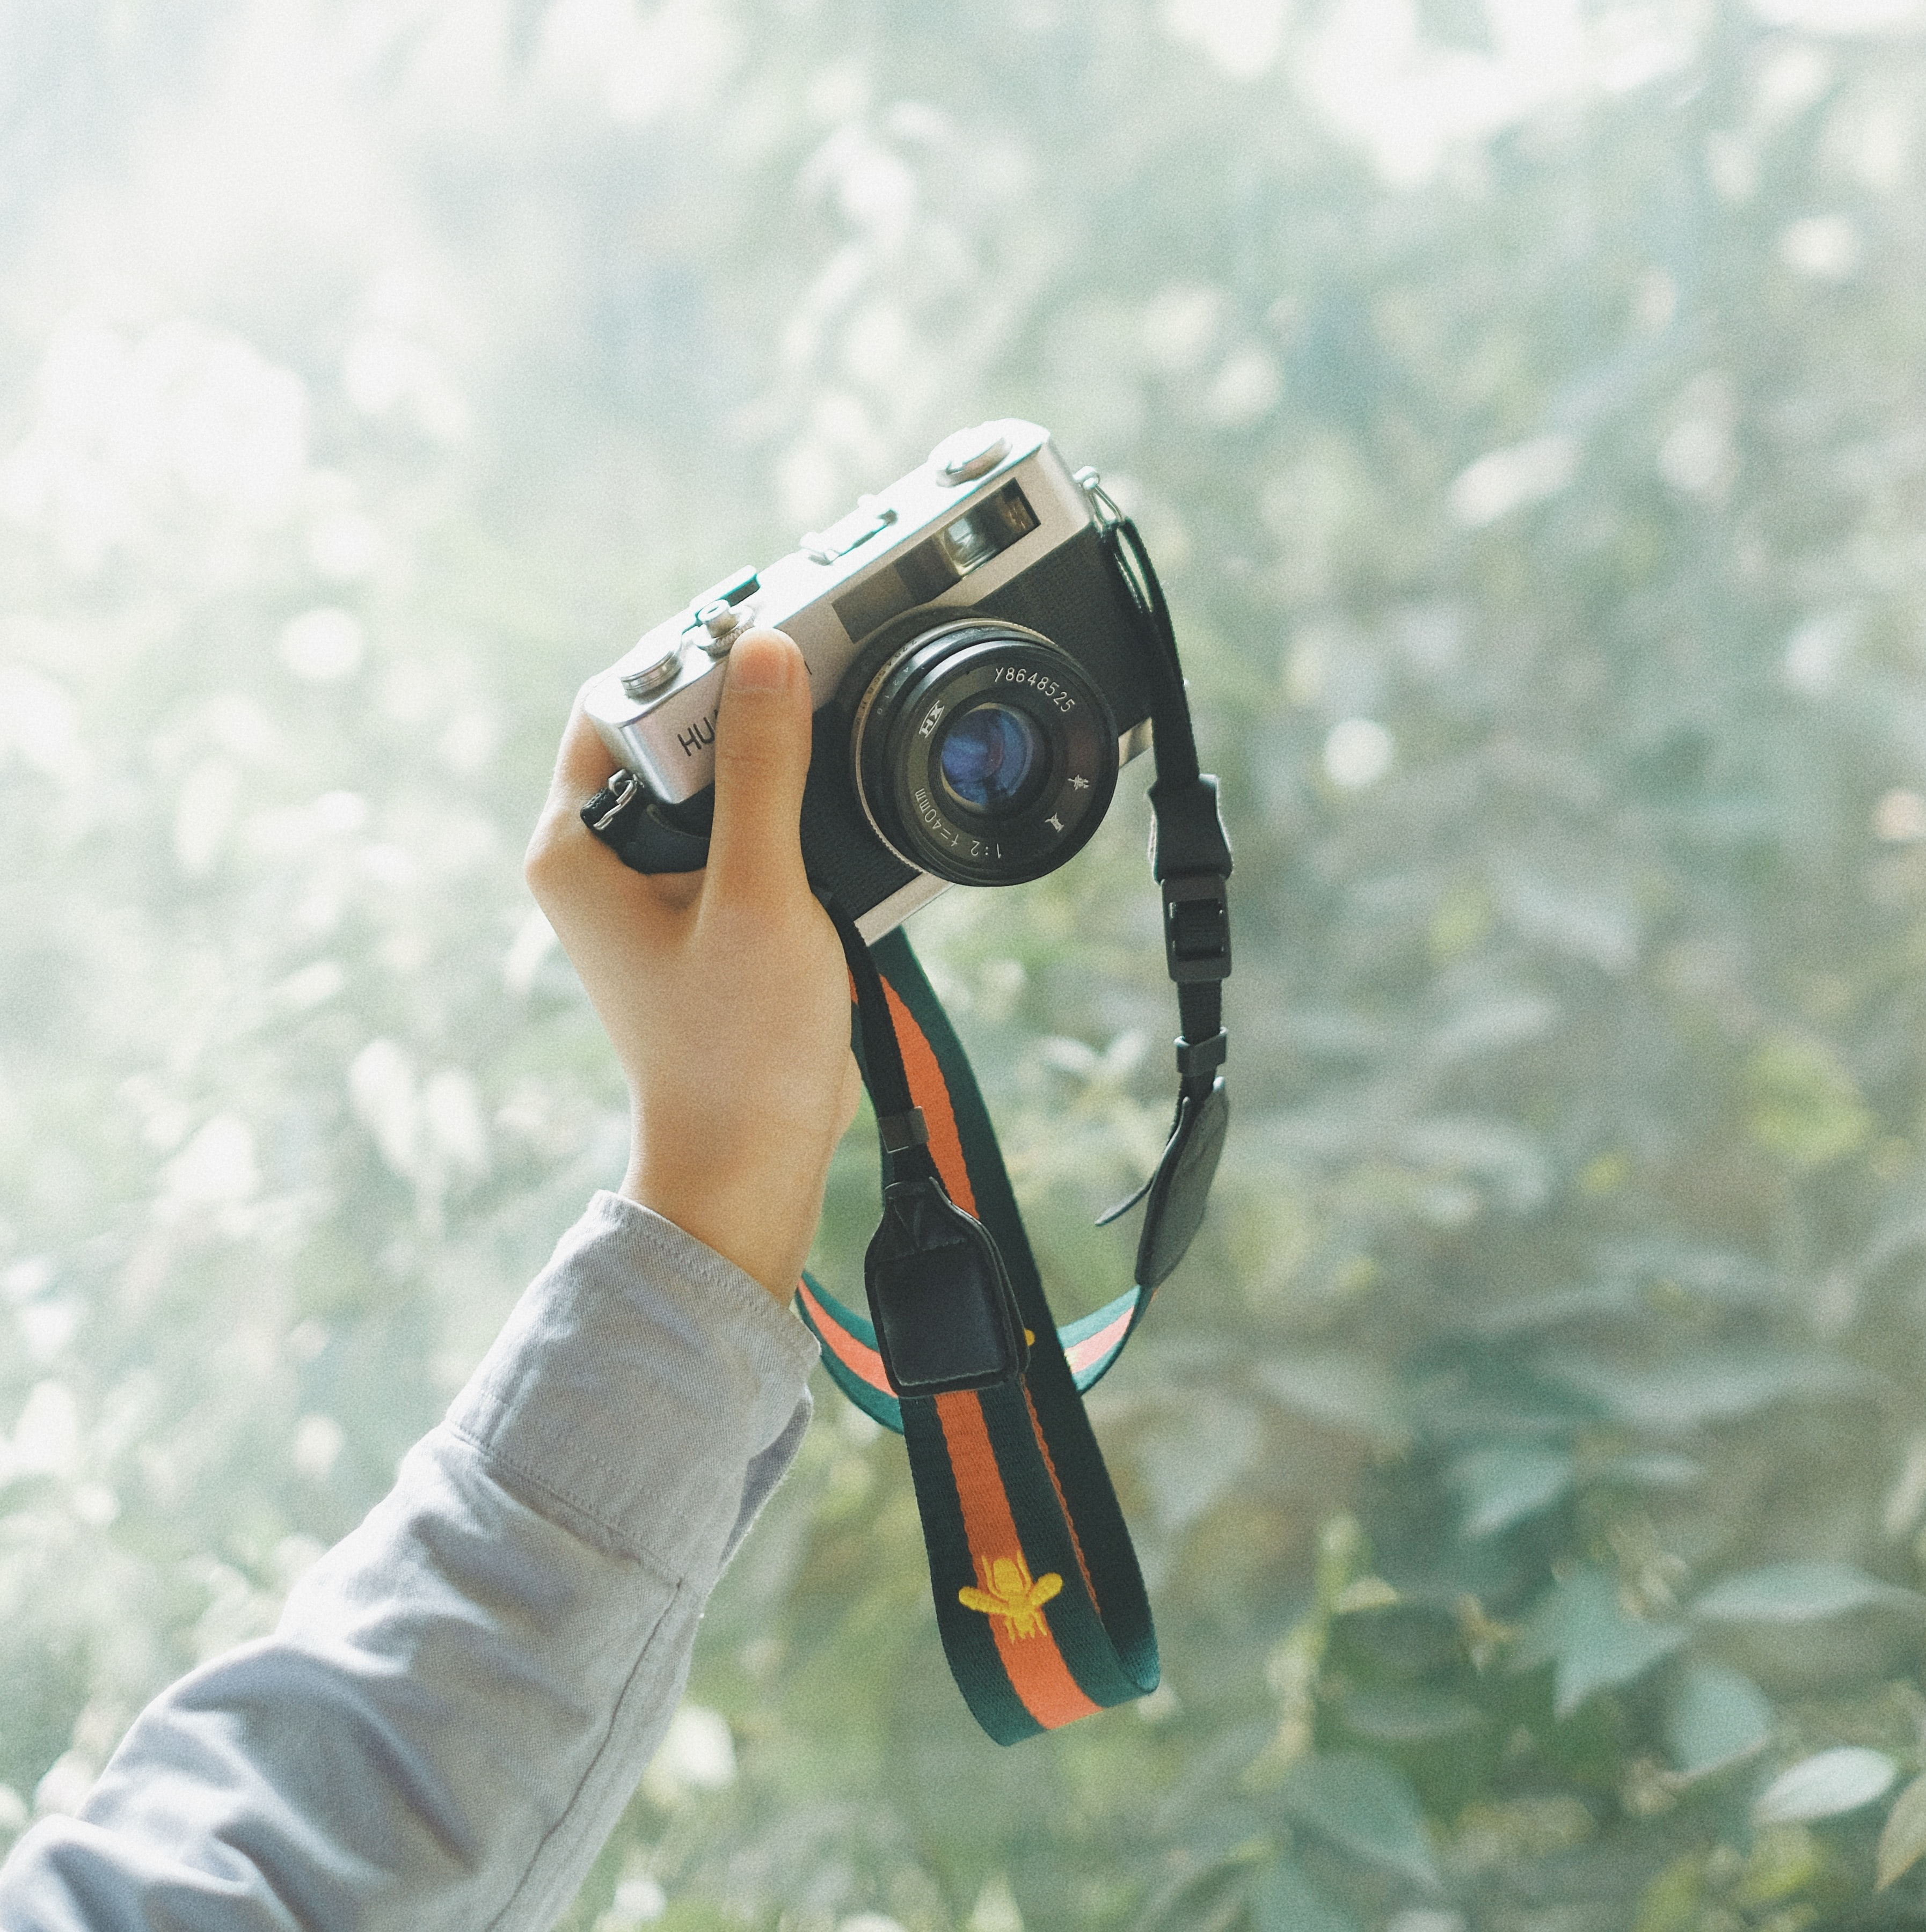 person holding grey and black mirrorless camera in front of green leafed trees during daytime